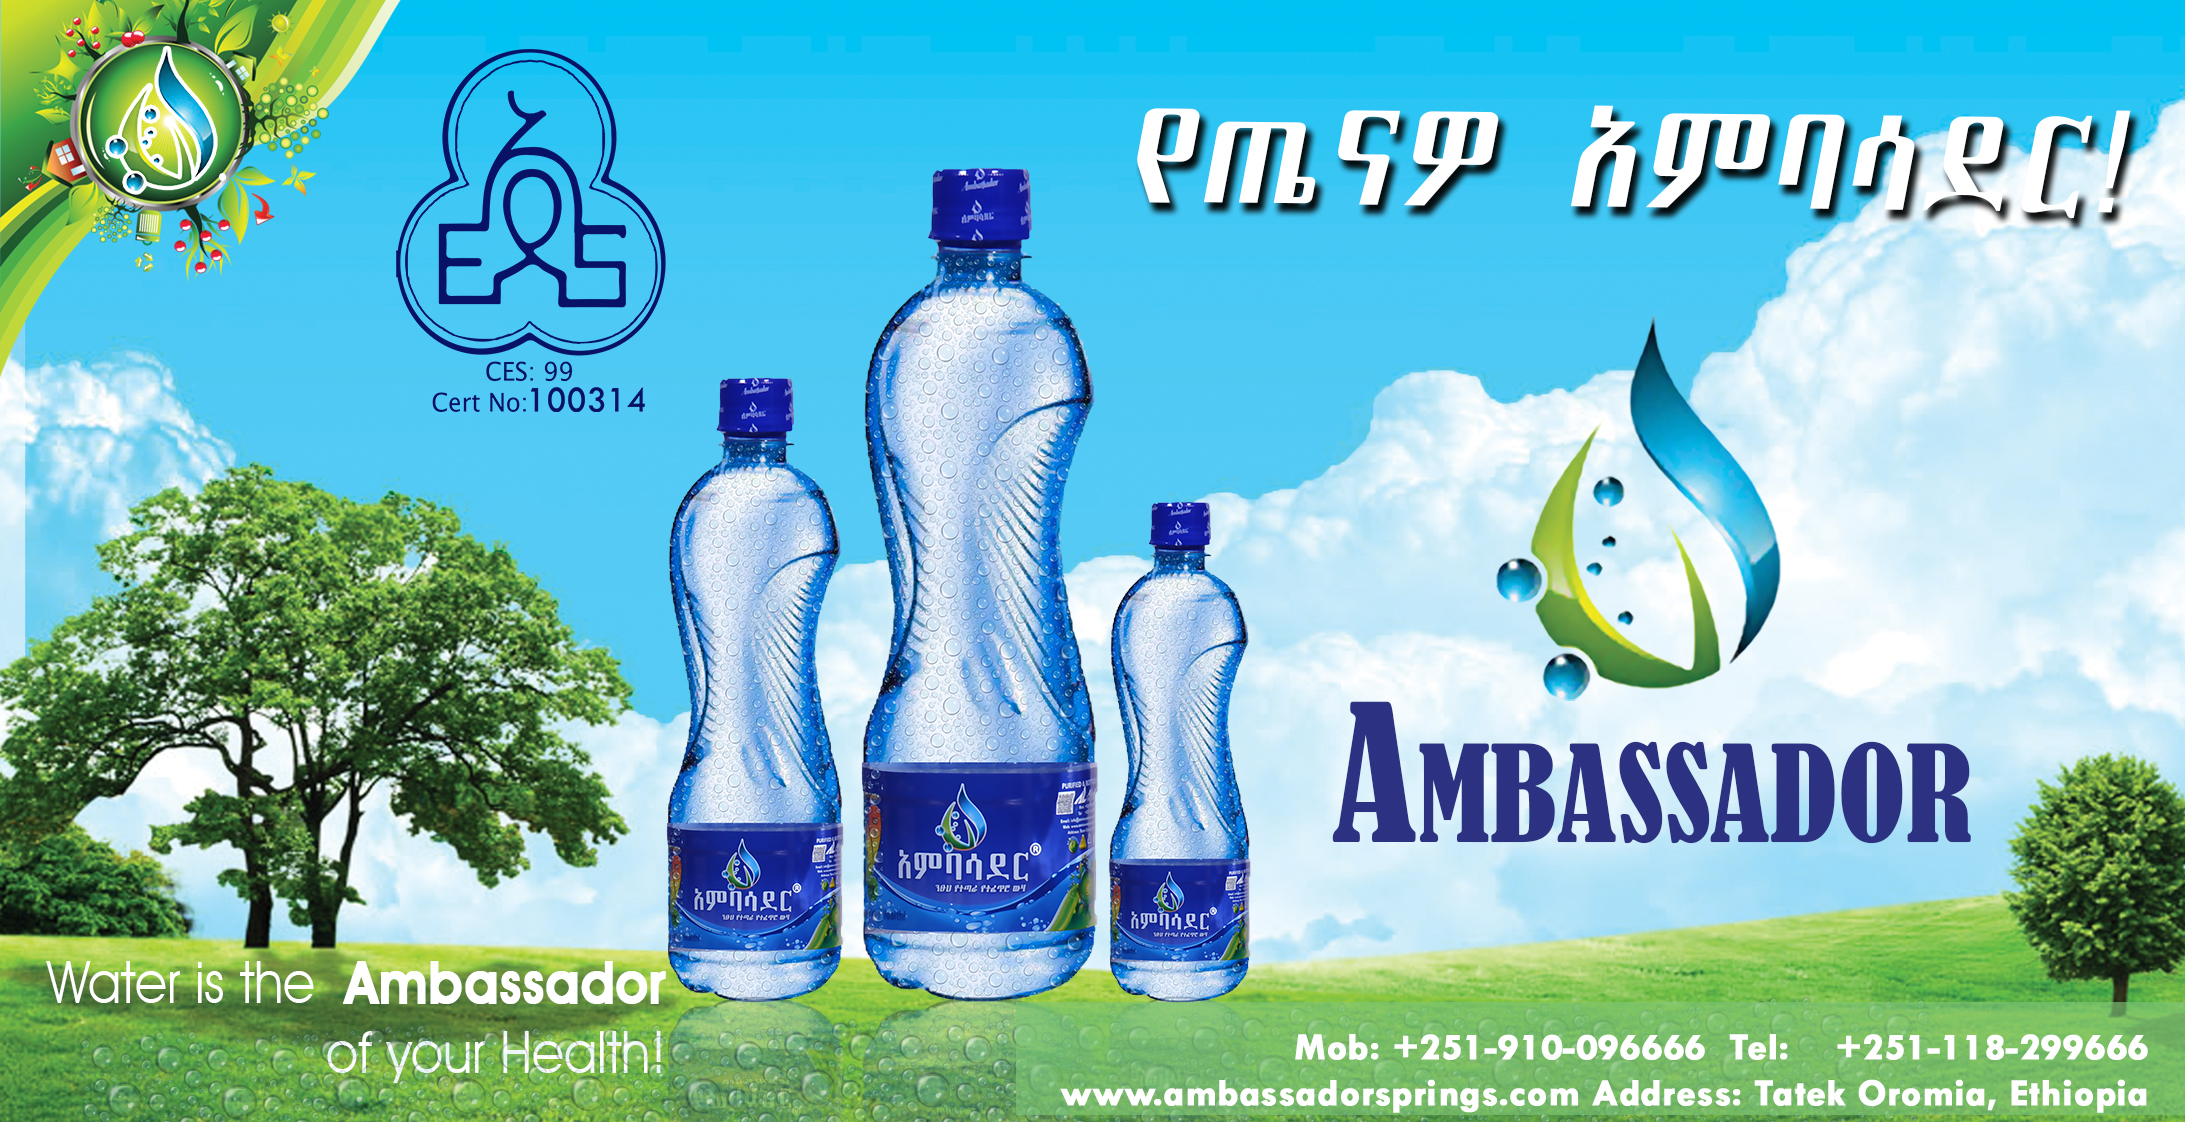 Ambassdor National